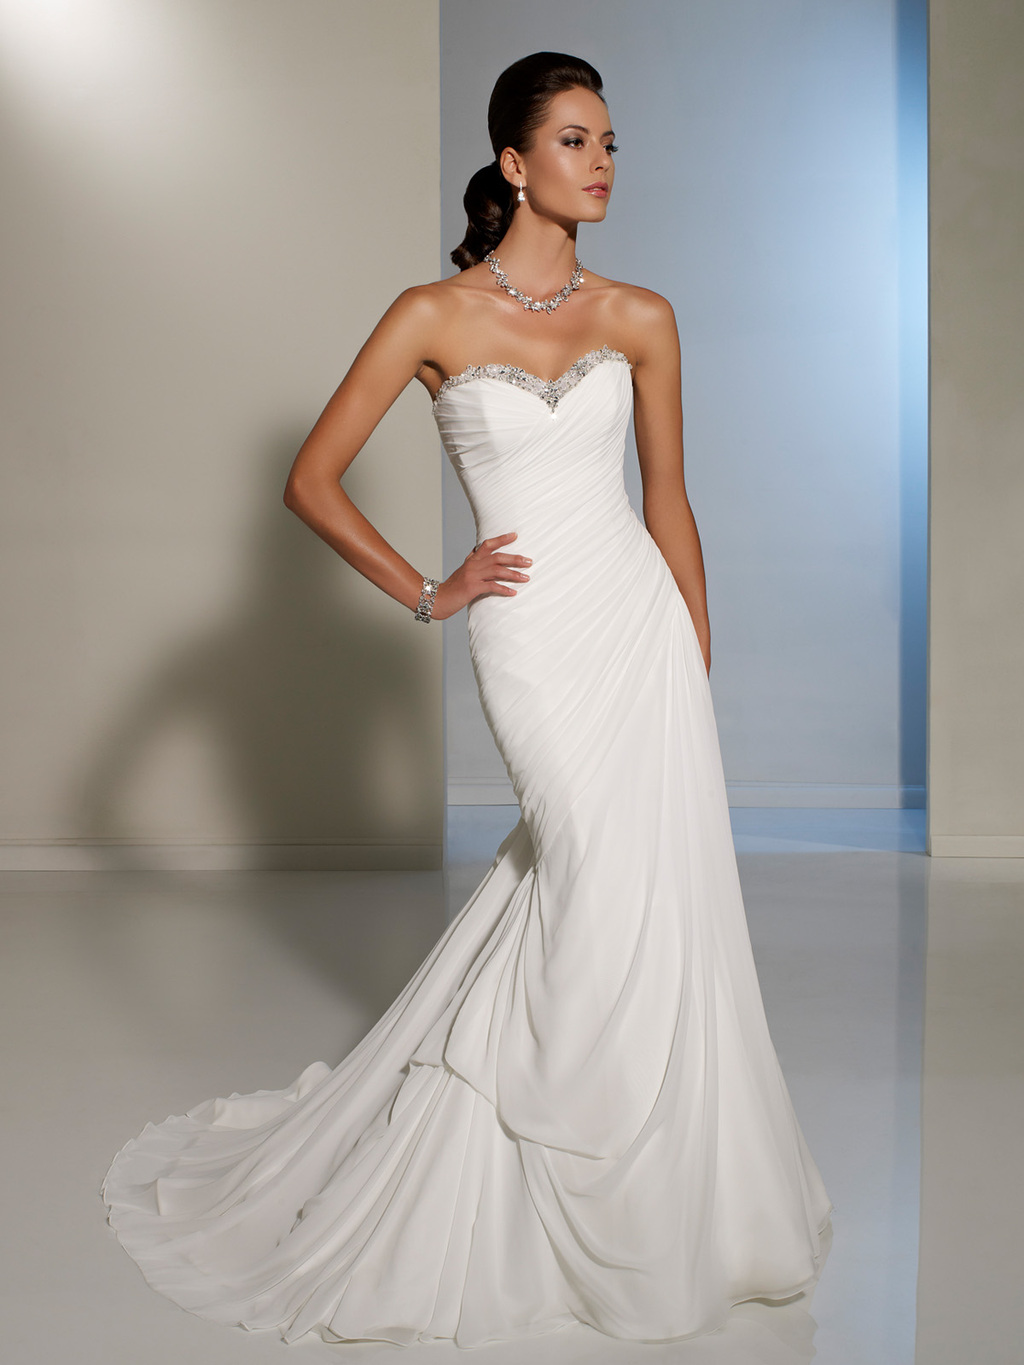 2012-wedding-dress-sophia-tolli-for-mon-cheri-bridal-gowns-y11225.full